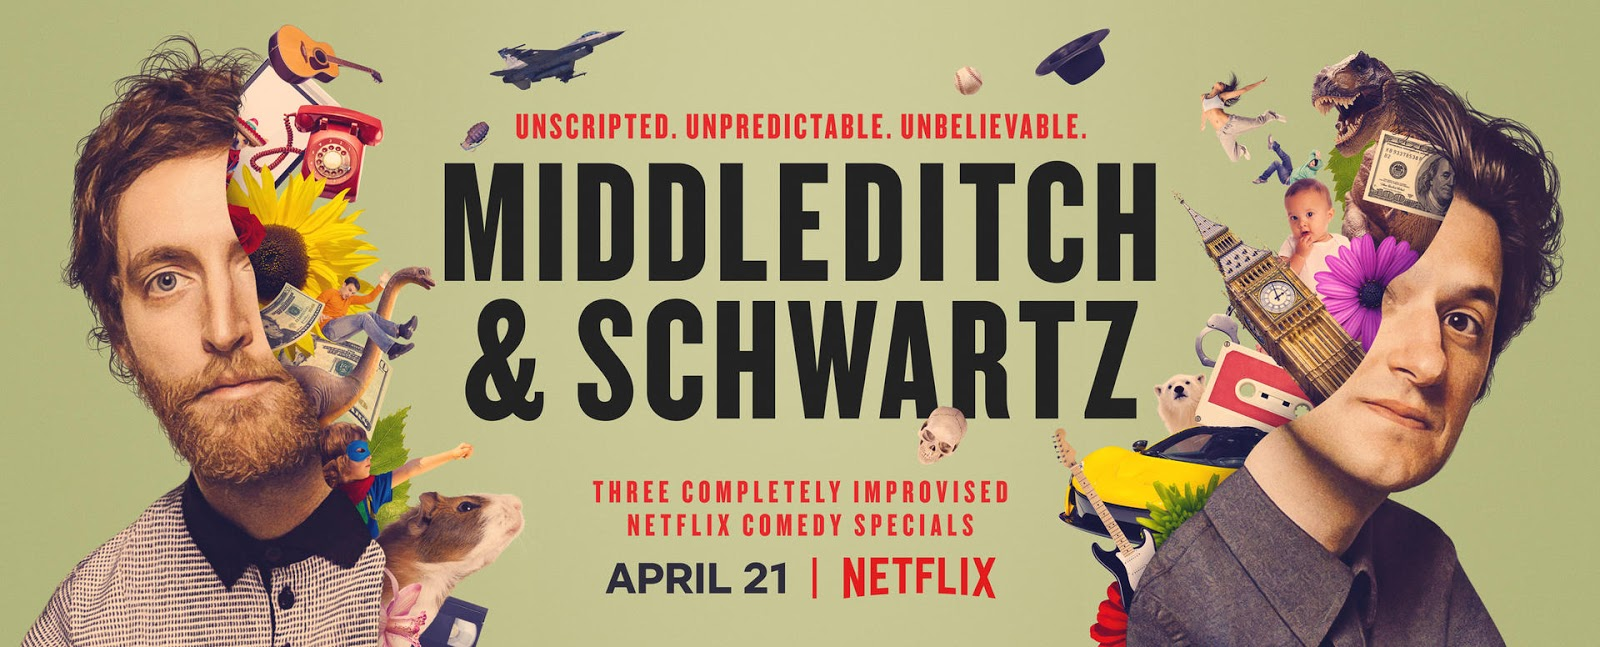 Netflix Releases Official Trailer For Middleditch & Schwartz,  A Collection of Three Completely Improvised Comedy Specials